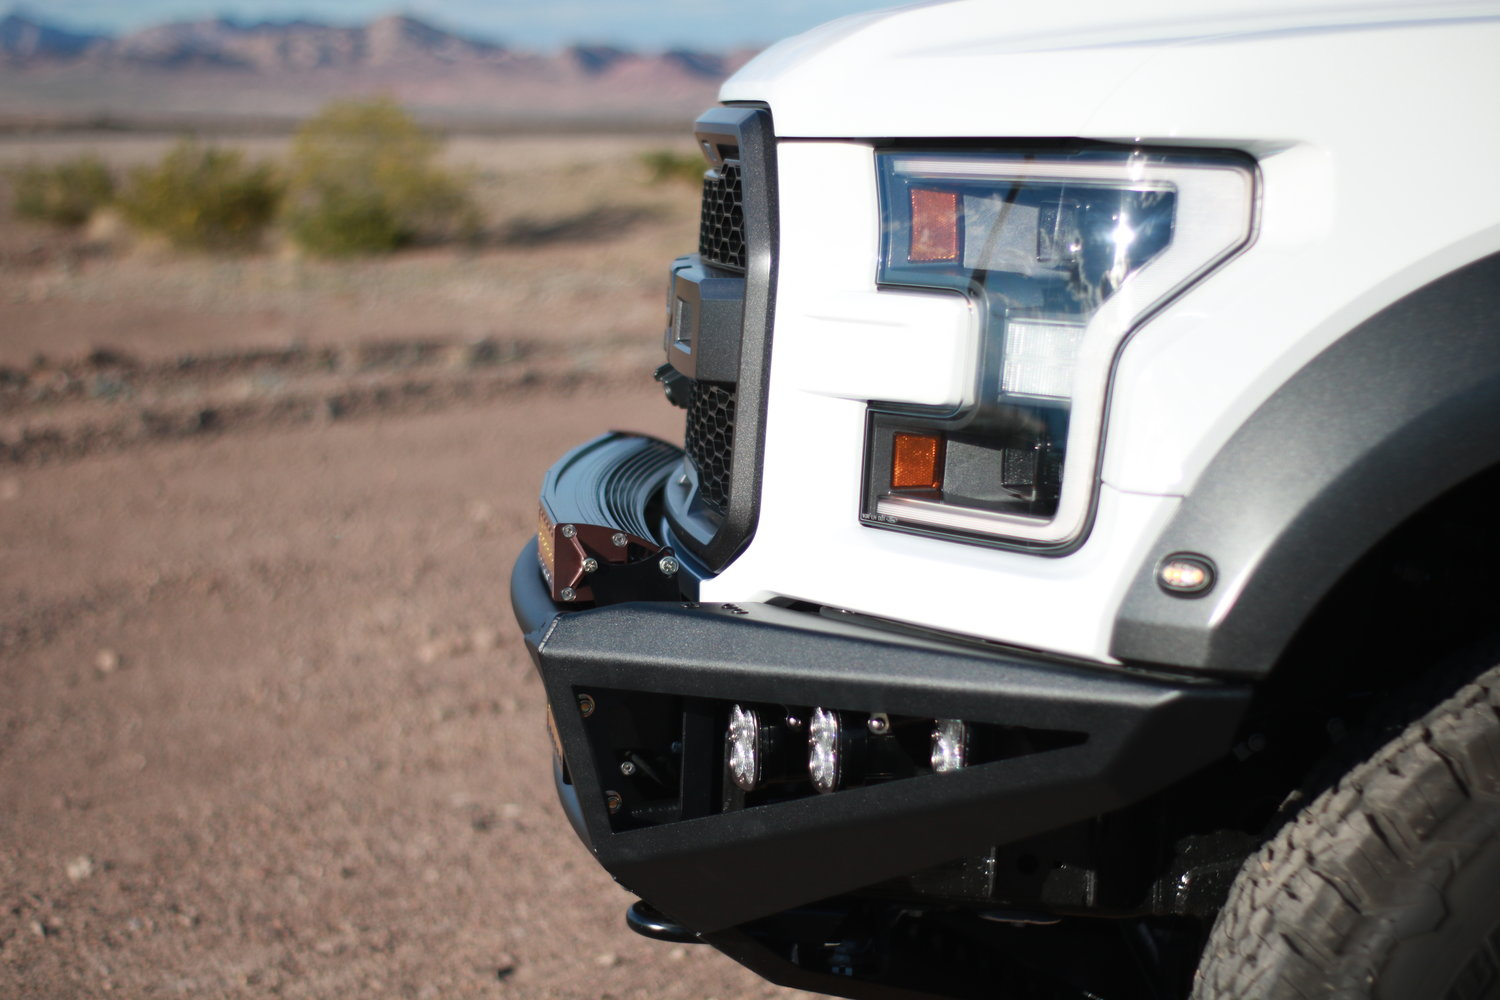 Rogue Racing Innovative Off Road Products And Designs Ford Raptor With Camper S Stage 4 Suspension Promotional Video